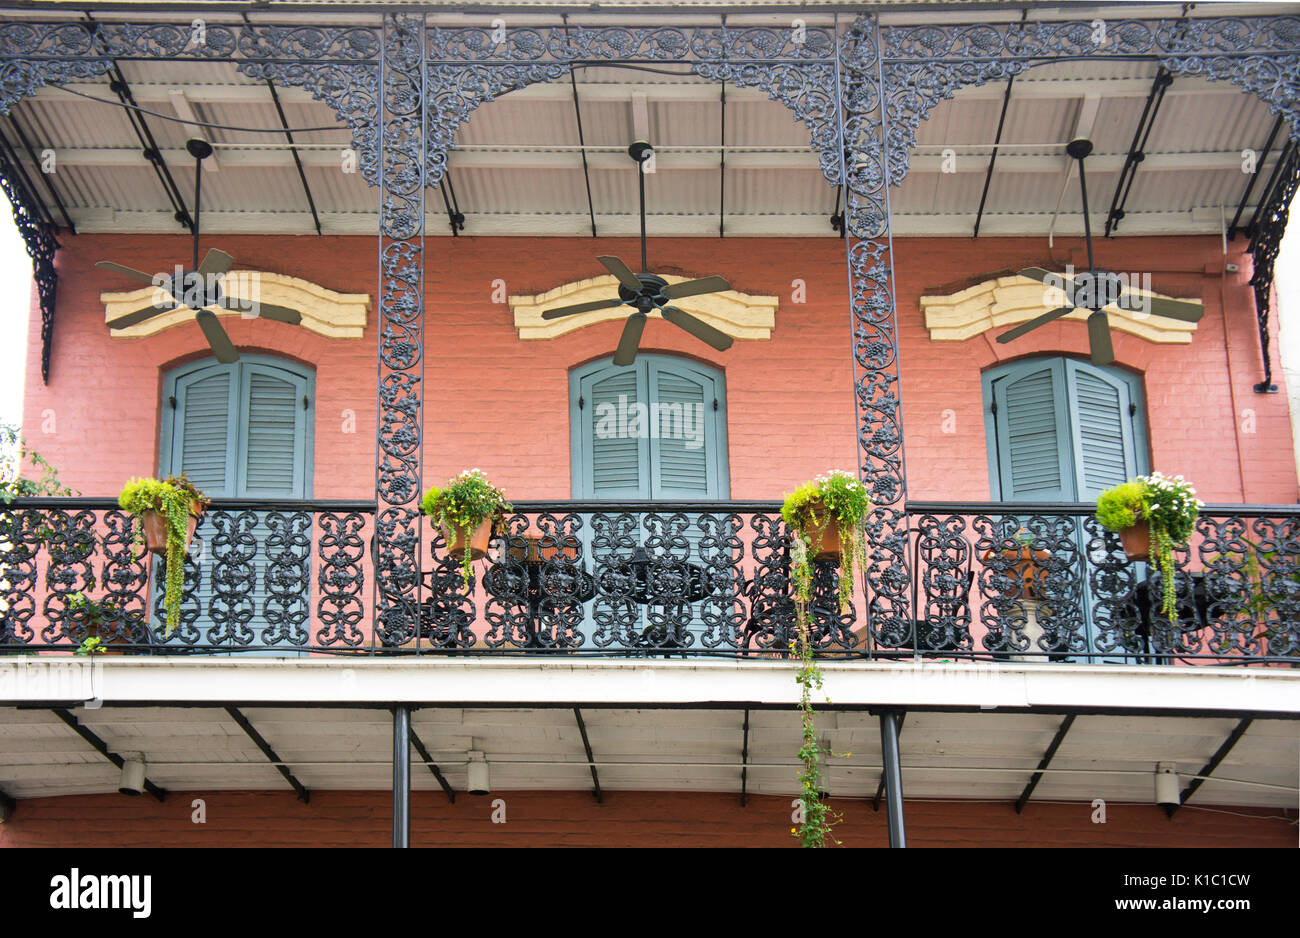 Ceiling fans stock photos ceiling fans stock images alamy french quarter building with iron balcony and ceiling fans new orleans la aloadofball Choice Image